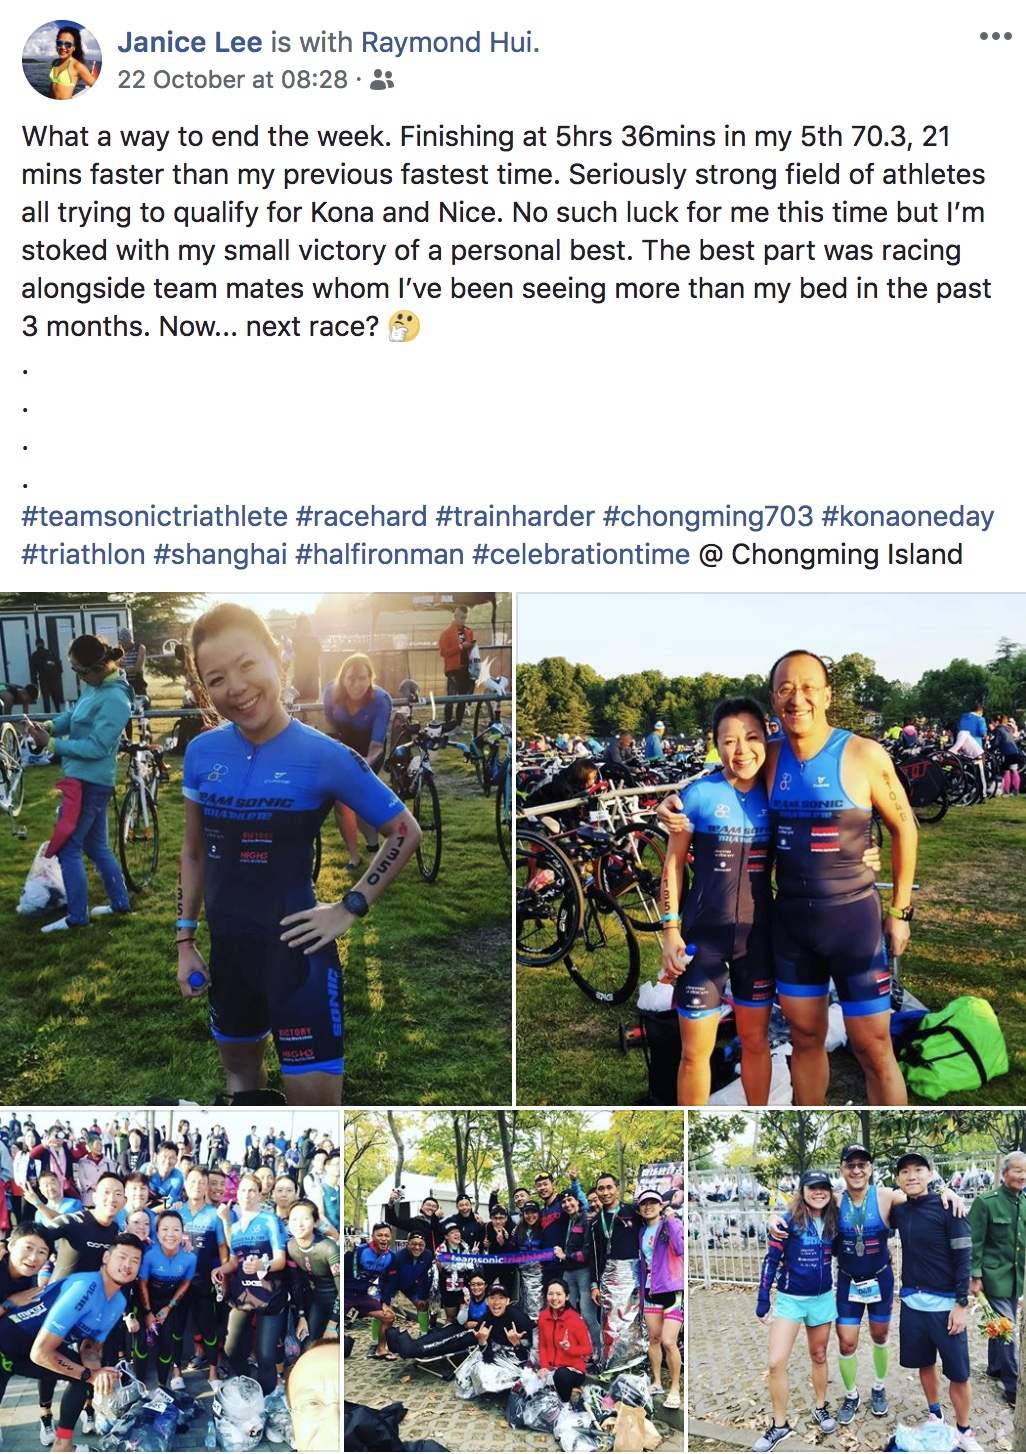 Janice aka fitJan is our Triathlon Queen in Sonic! I am happy to work with her to achieve another PB while maintaining the schedule didn't impact too much to her job and social life. We all know this girl is the speed daemon, and she could be even faster!